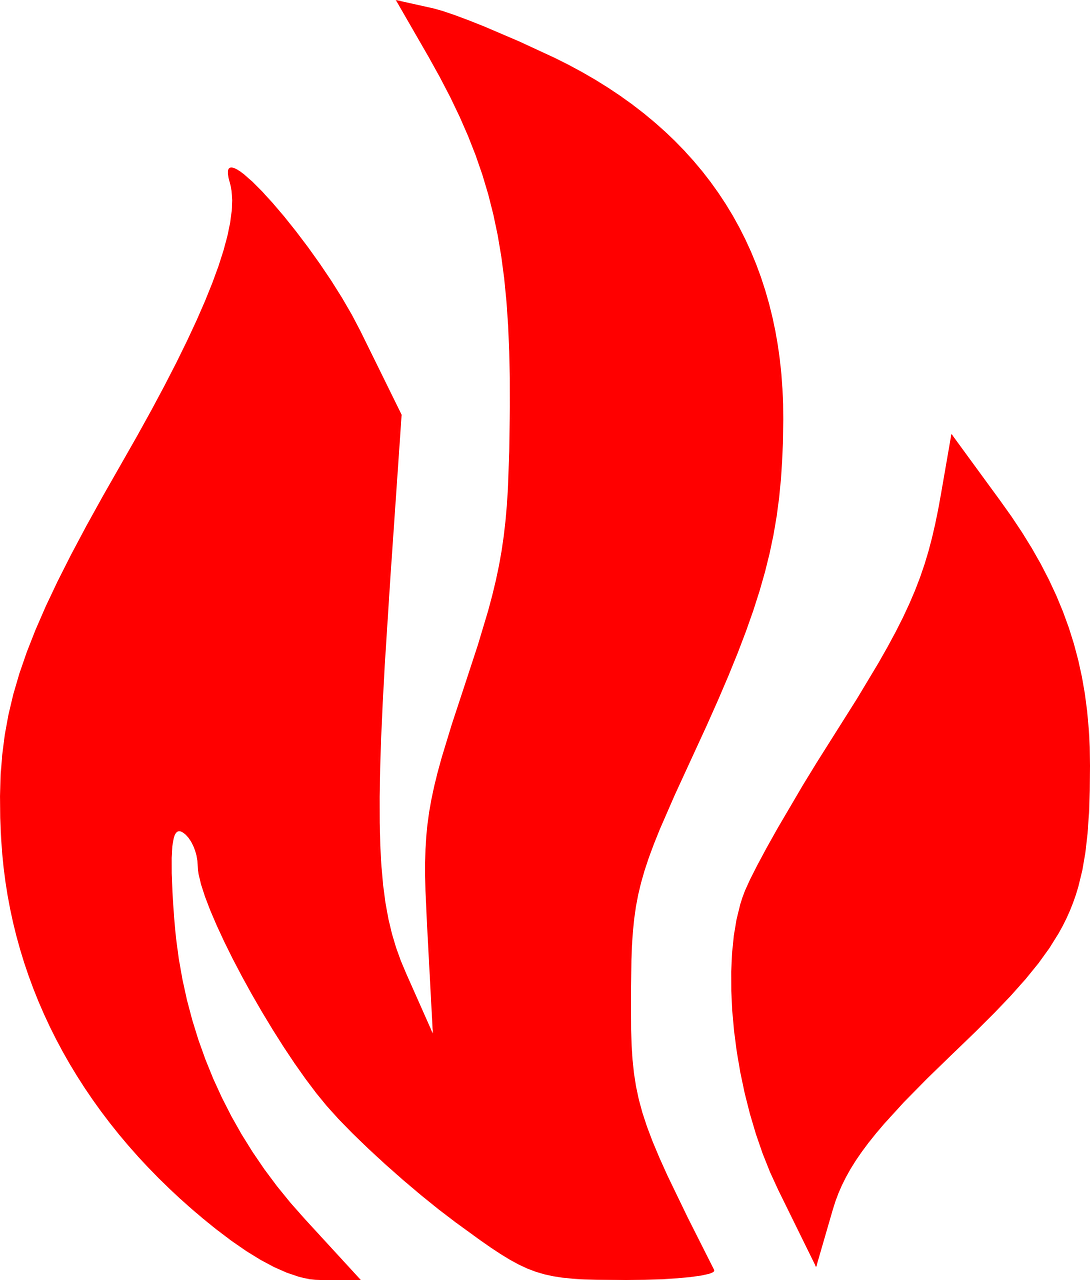 How to draw flames fire - free stencils 12